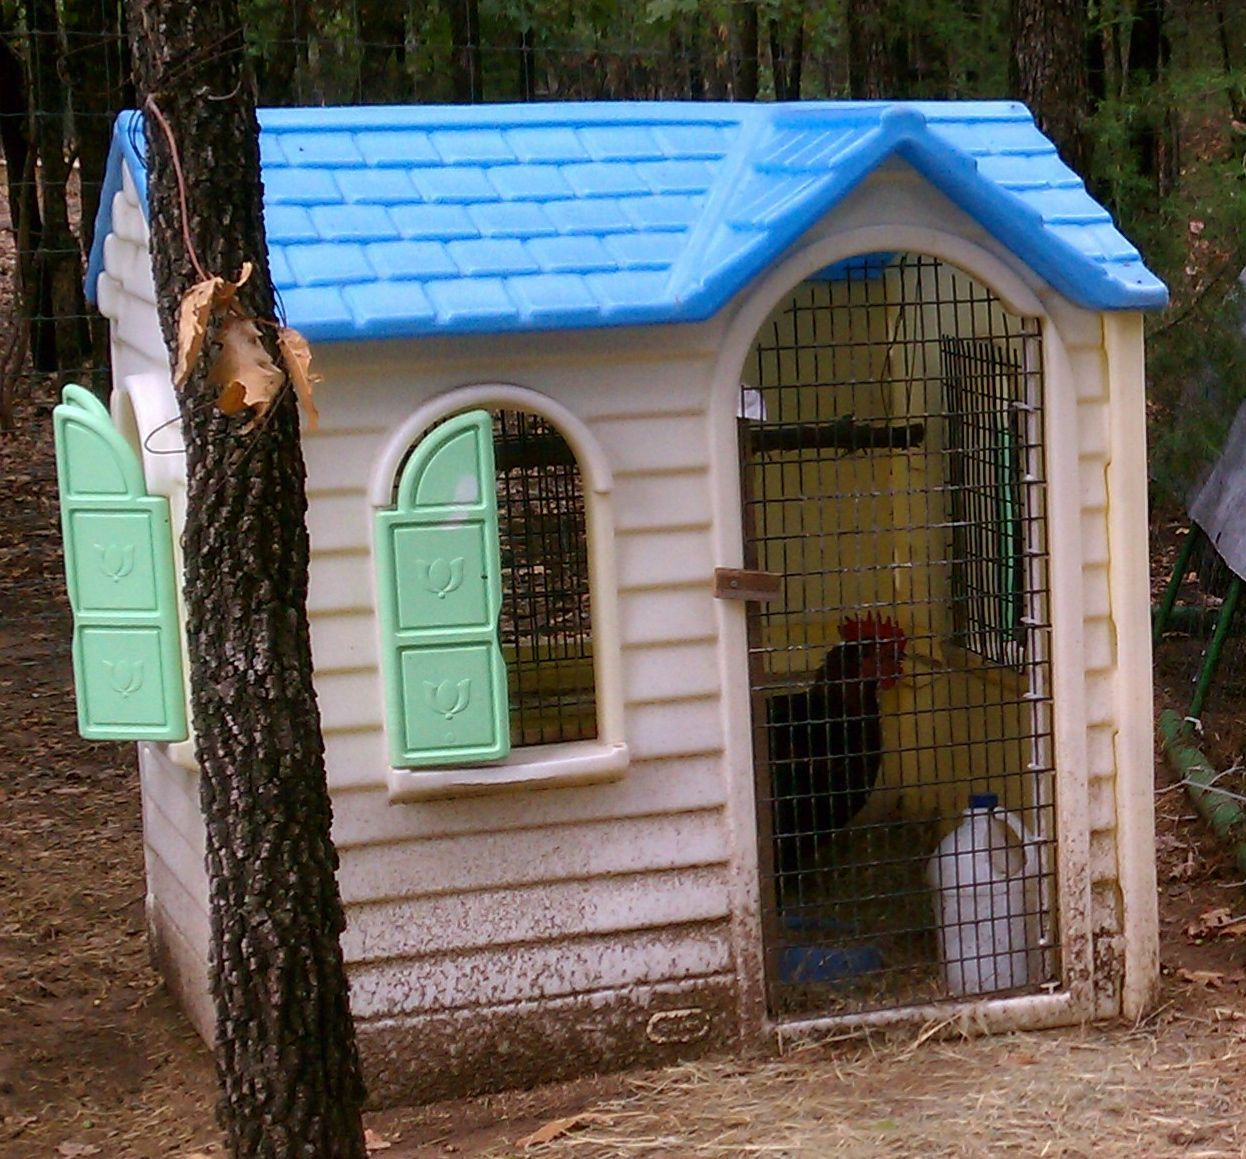 Playhouse Repurposed Into Small Chicken Coop I Knew I